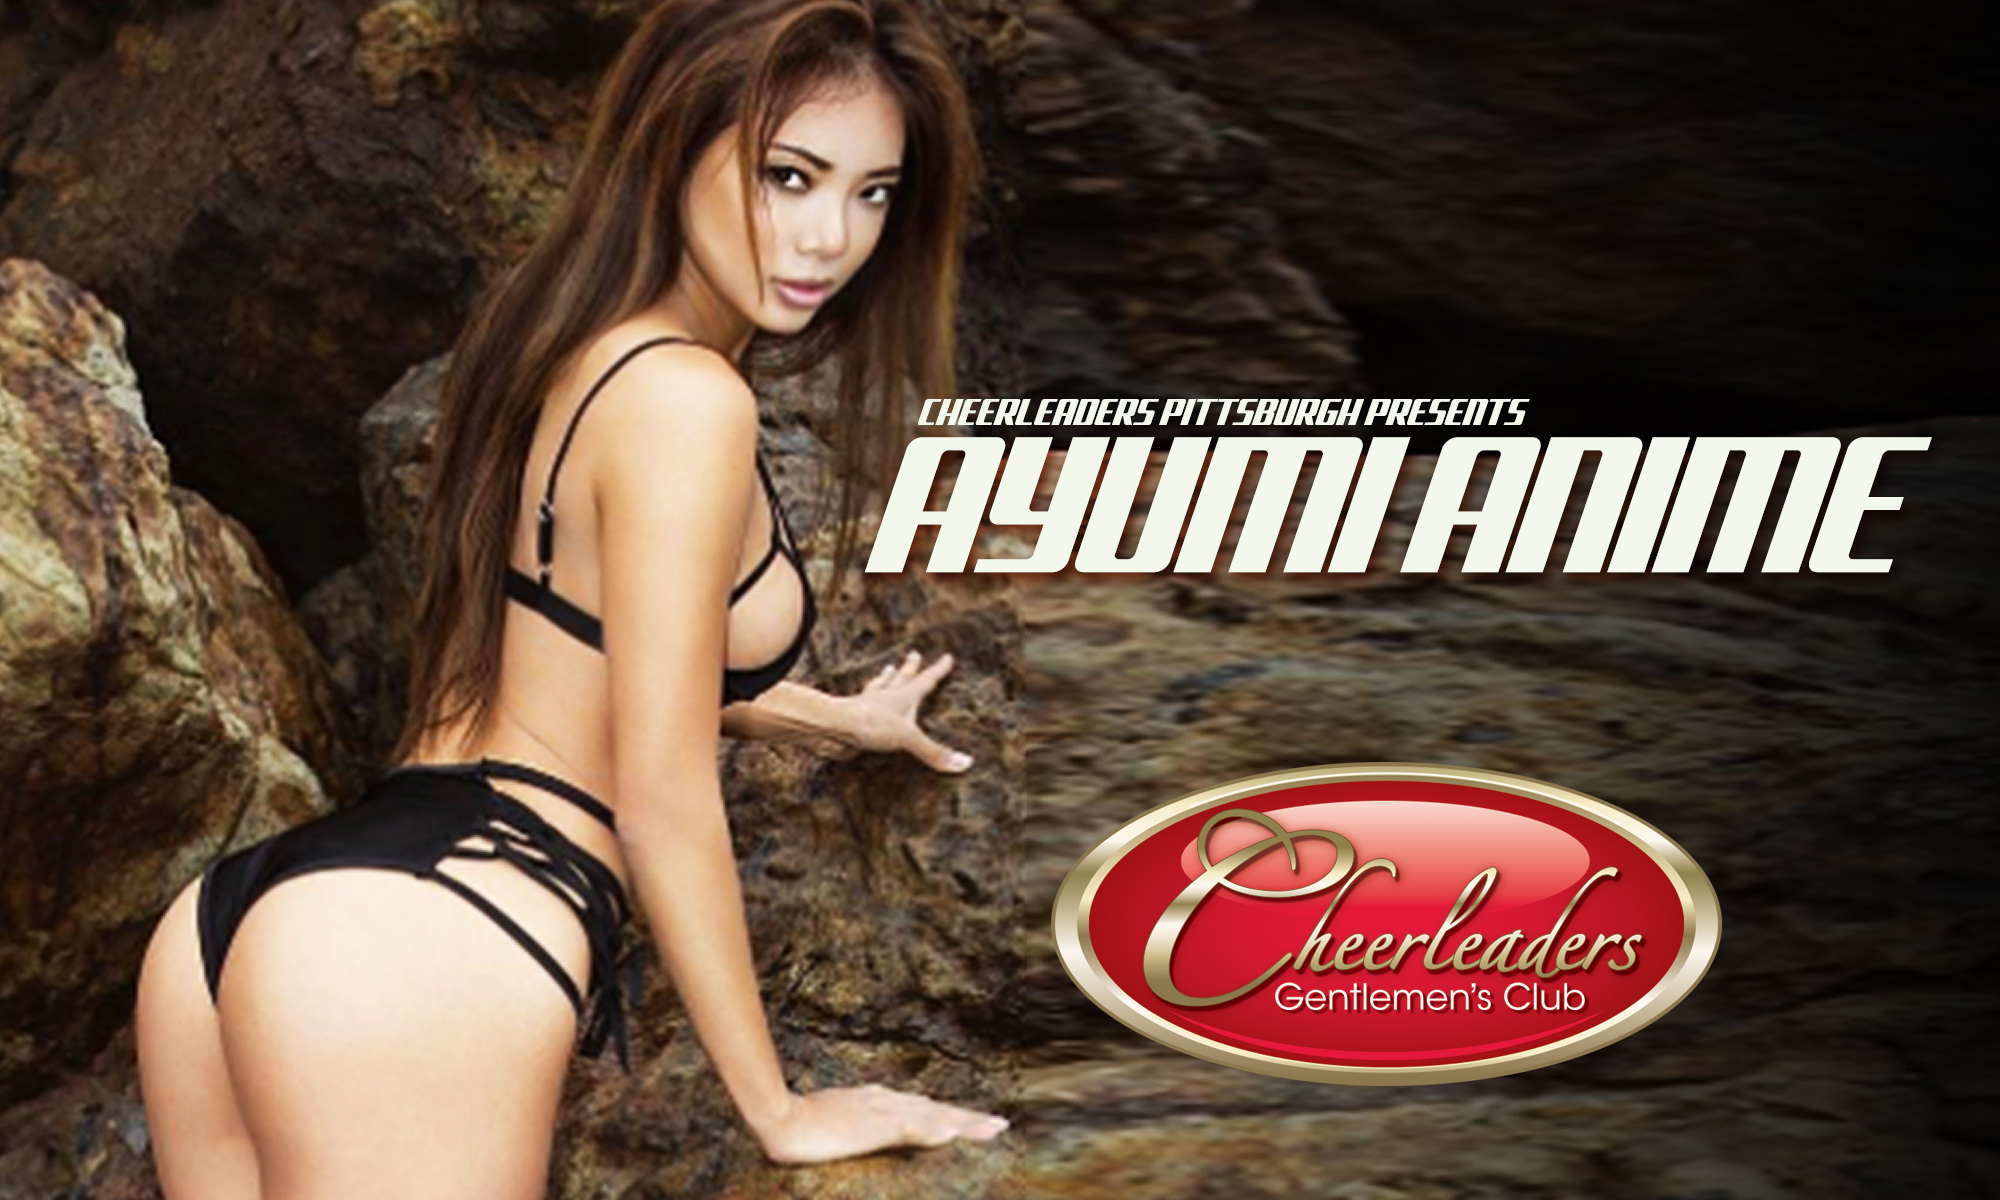 Ayumi Anime - Cheerleaders Pittsburgh